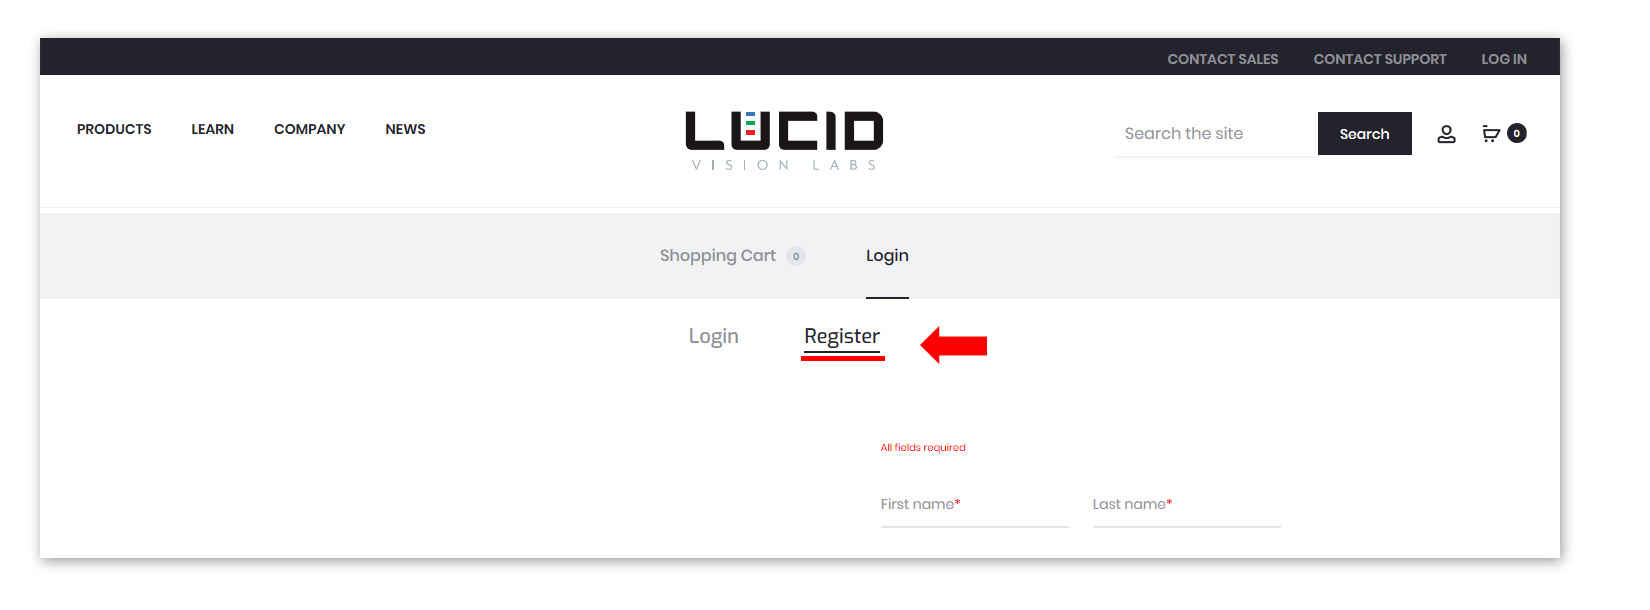 Lucid webstore instructions step 2